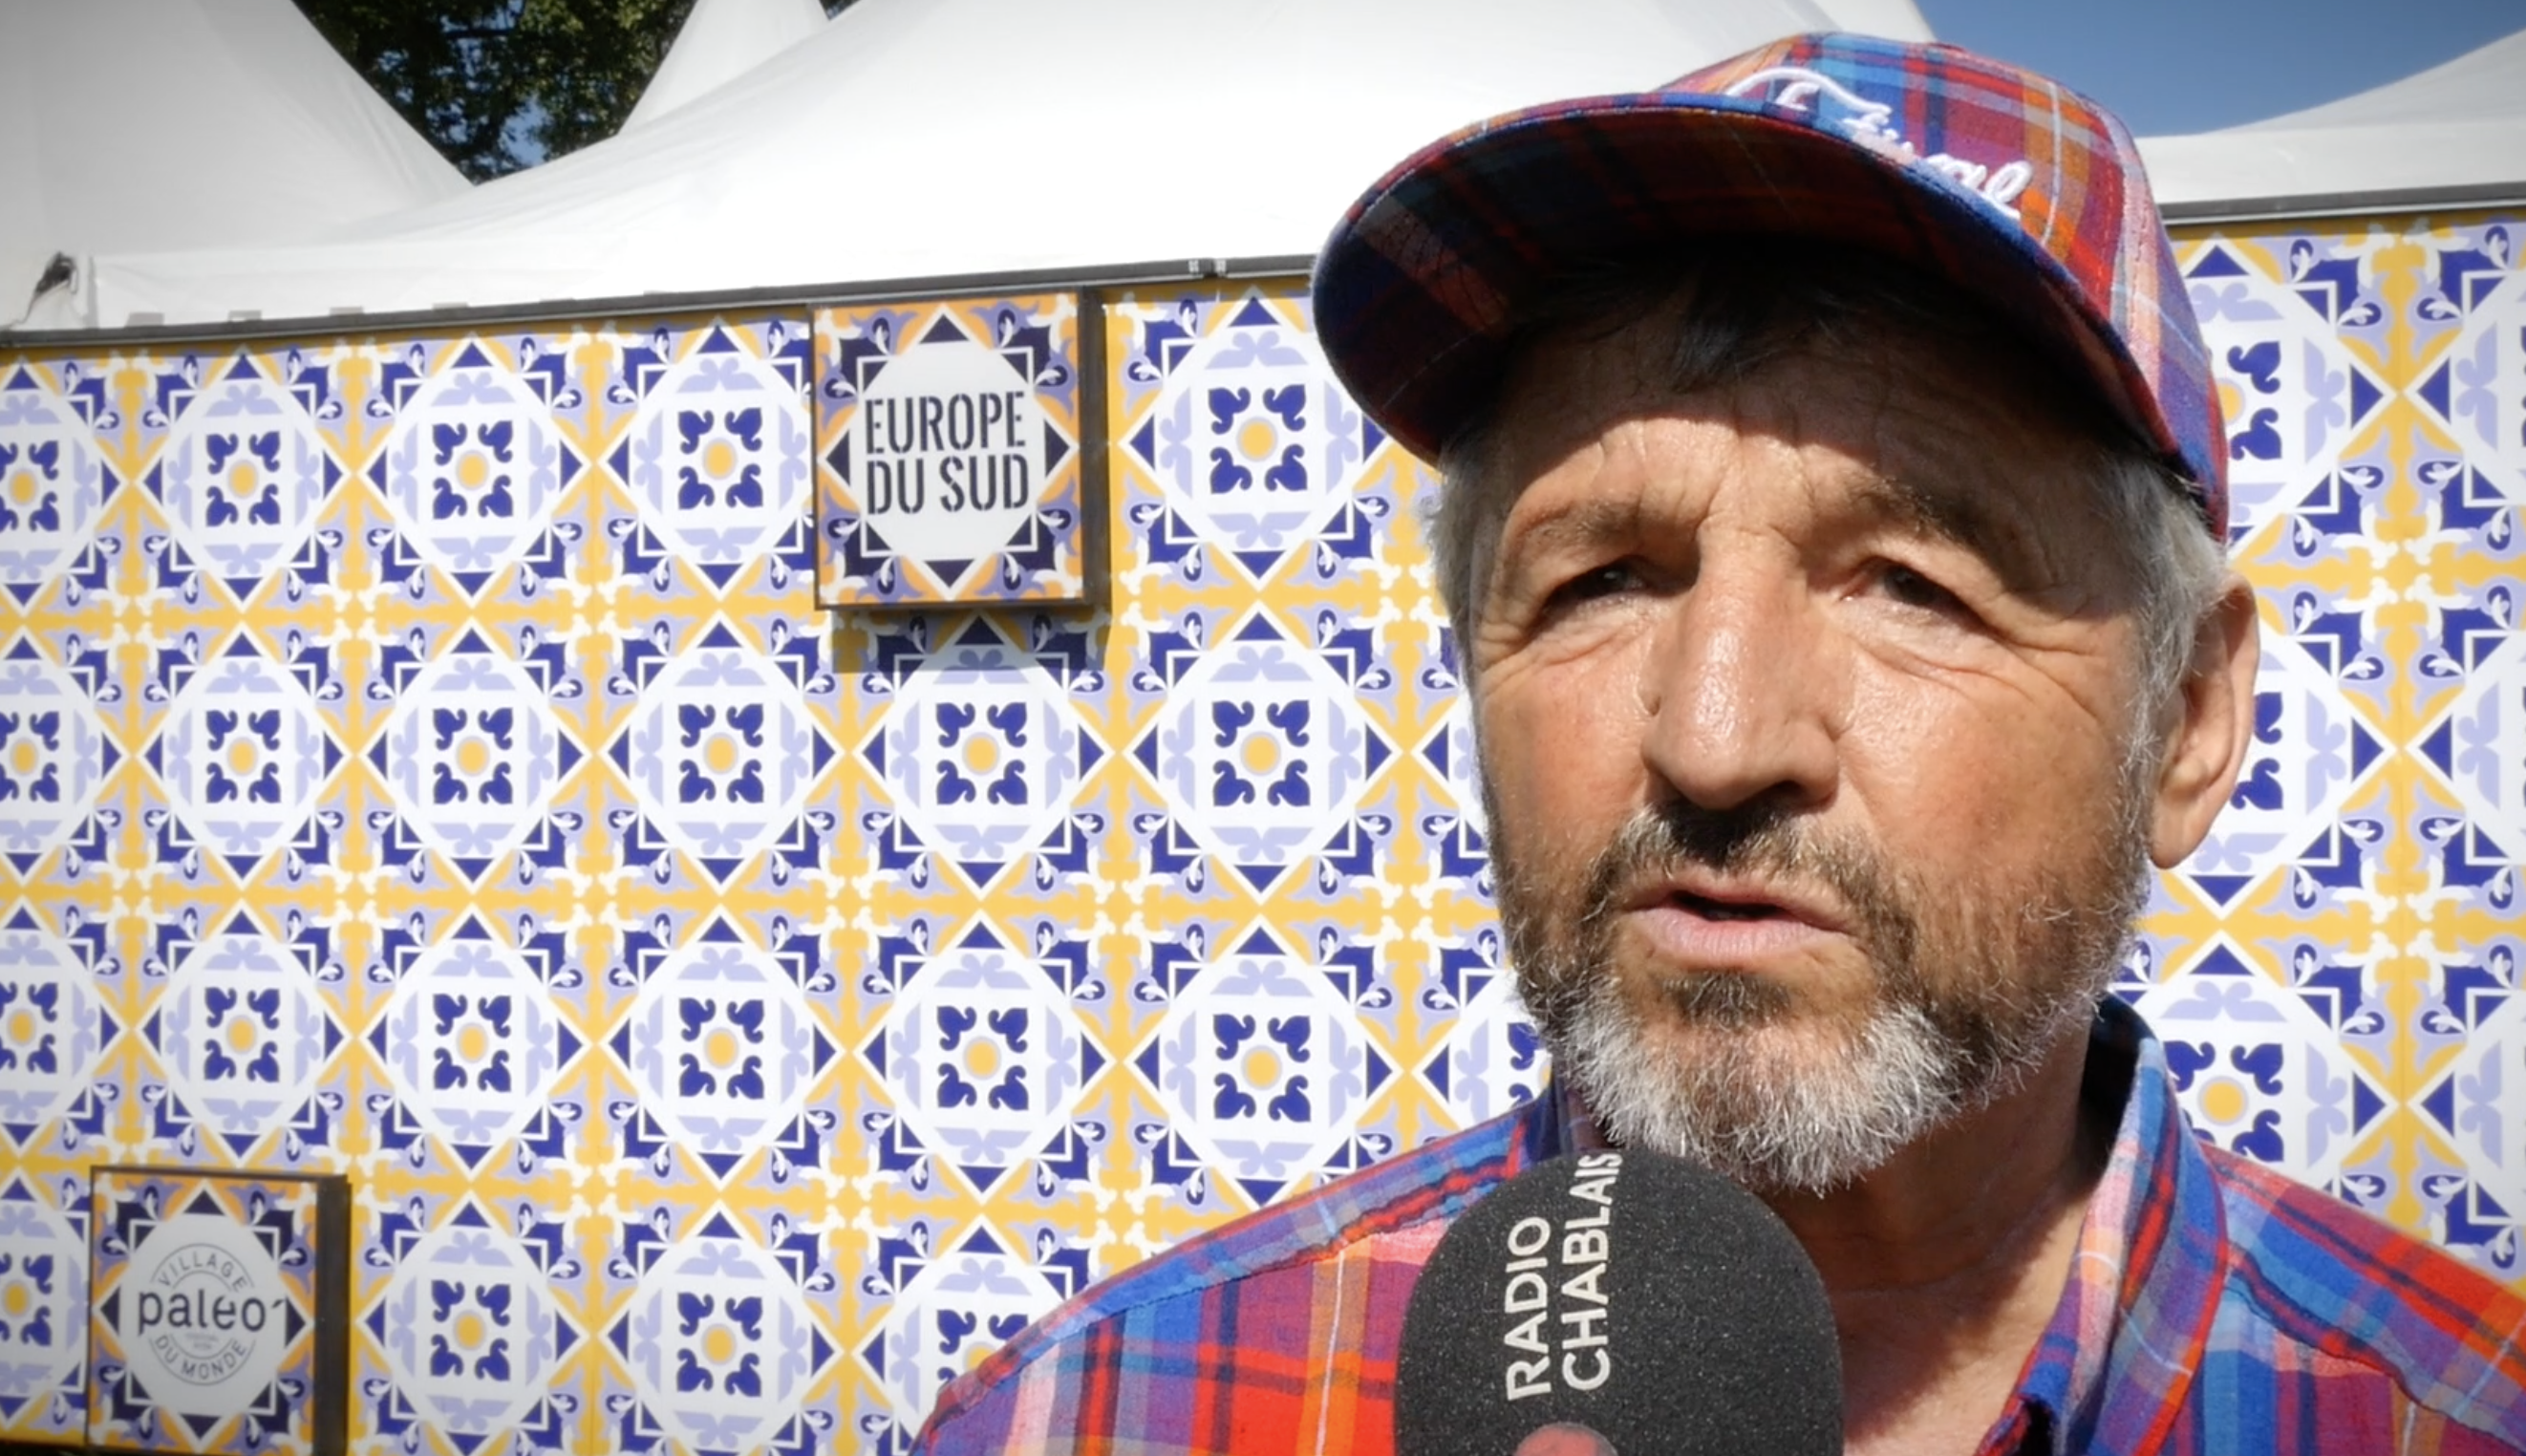 L'interview du patron du Paléo